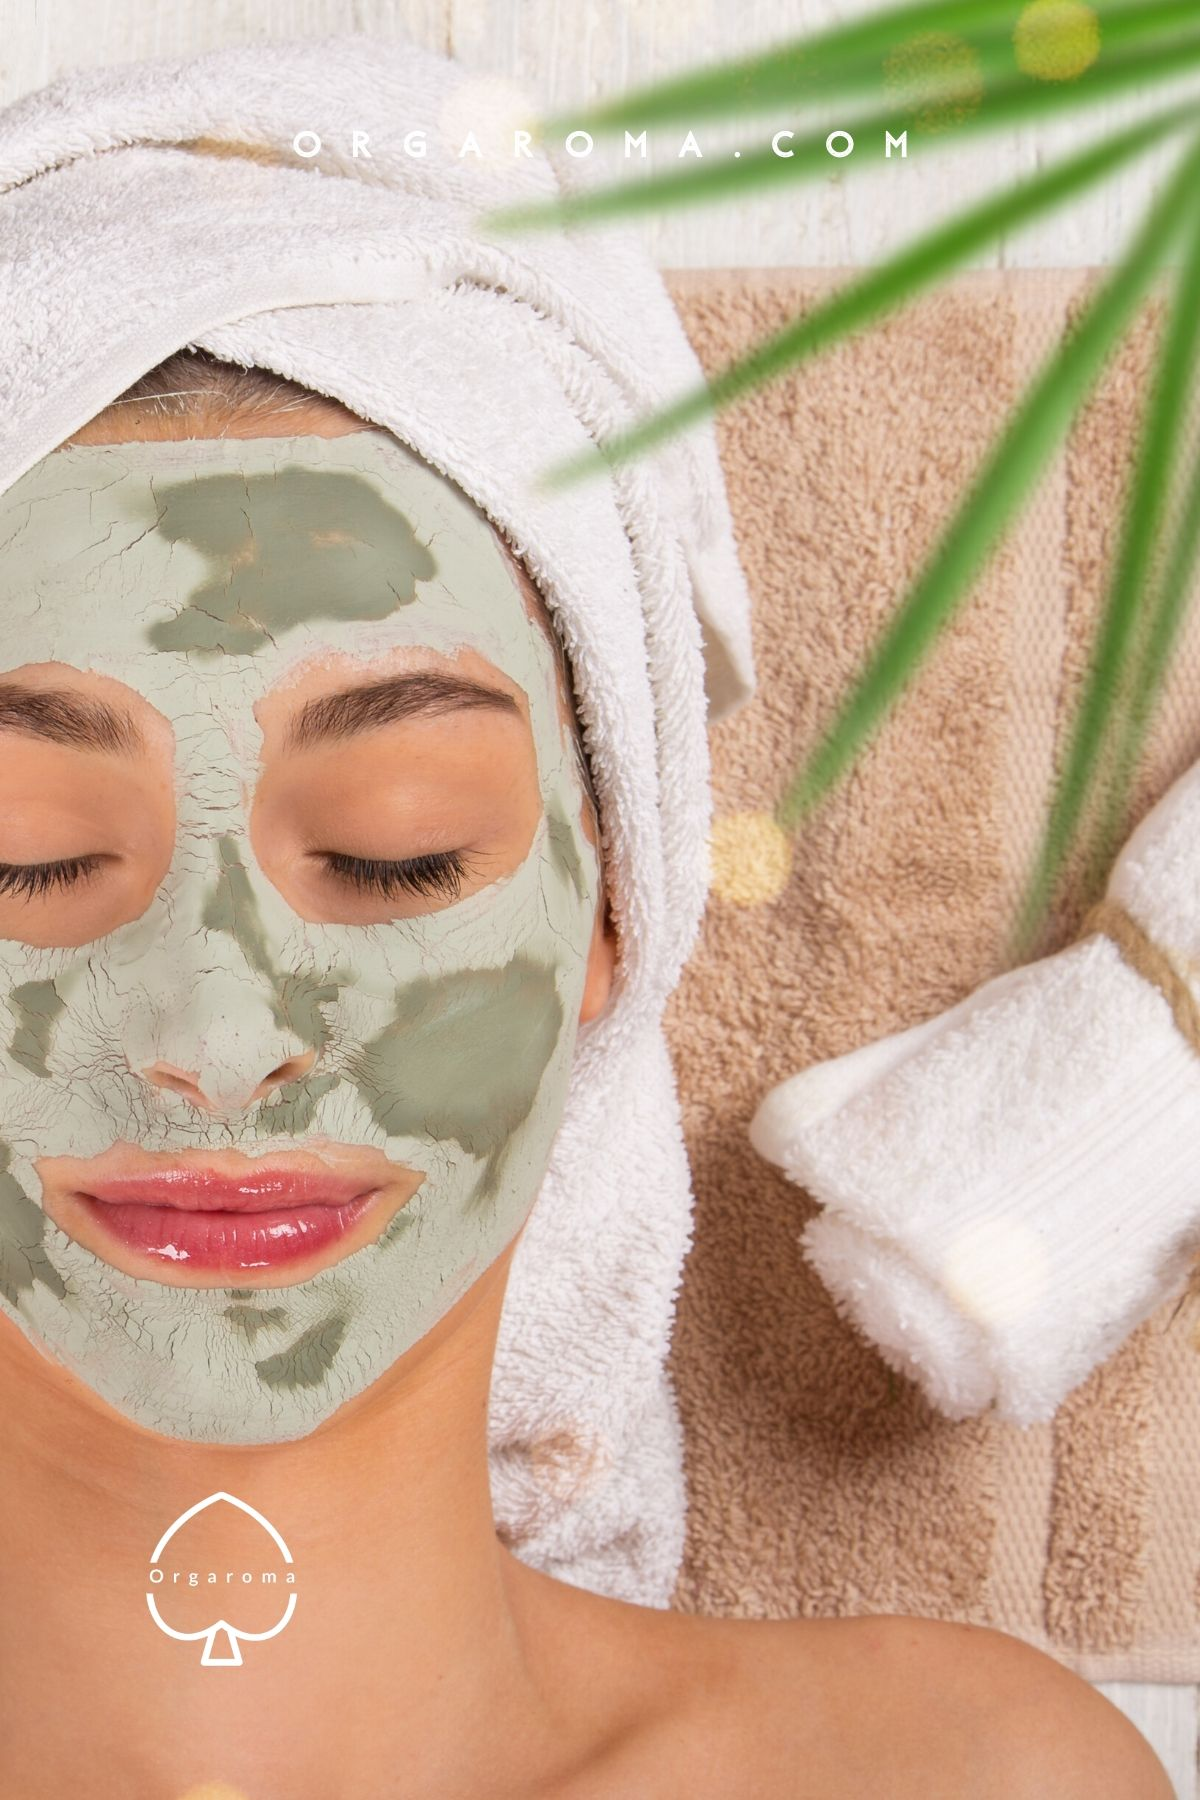 Benefit from the Face mask